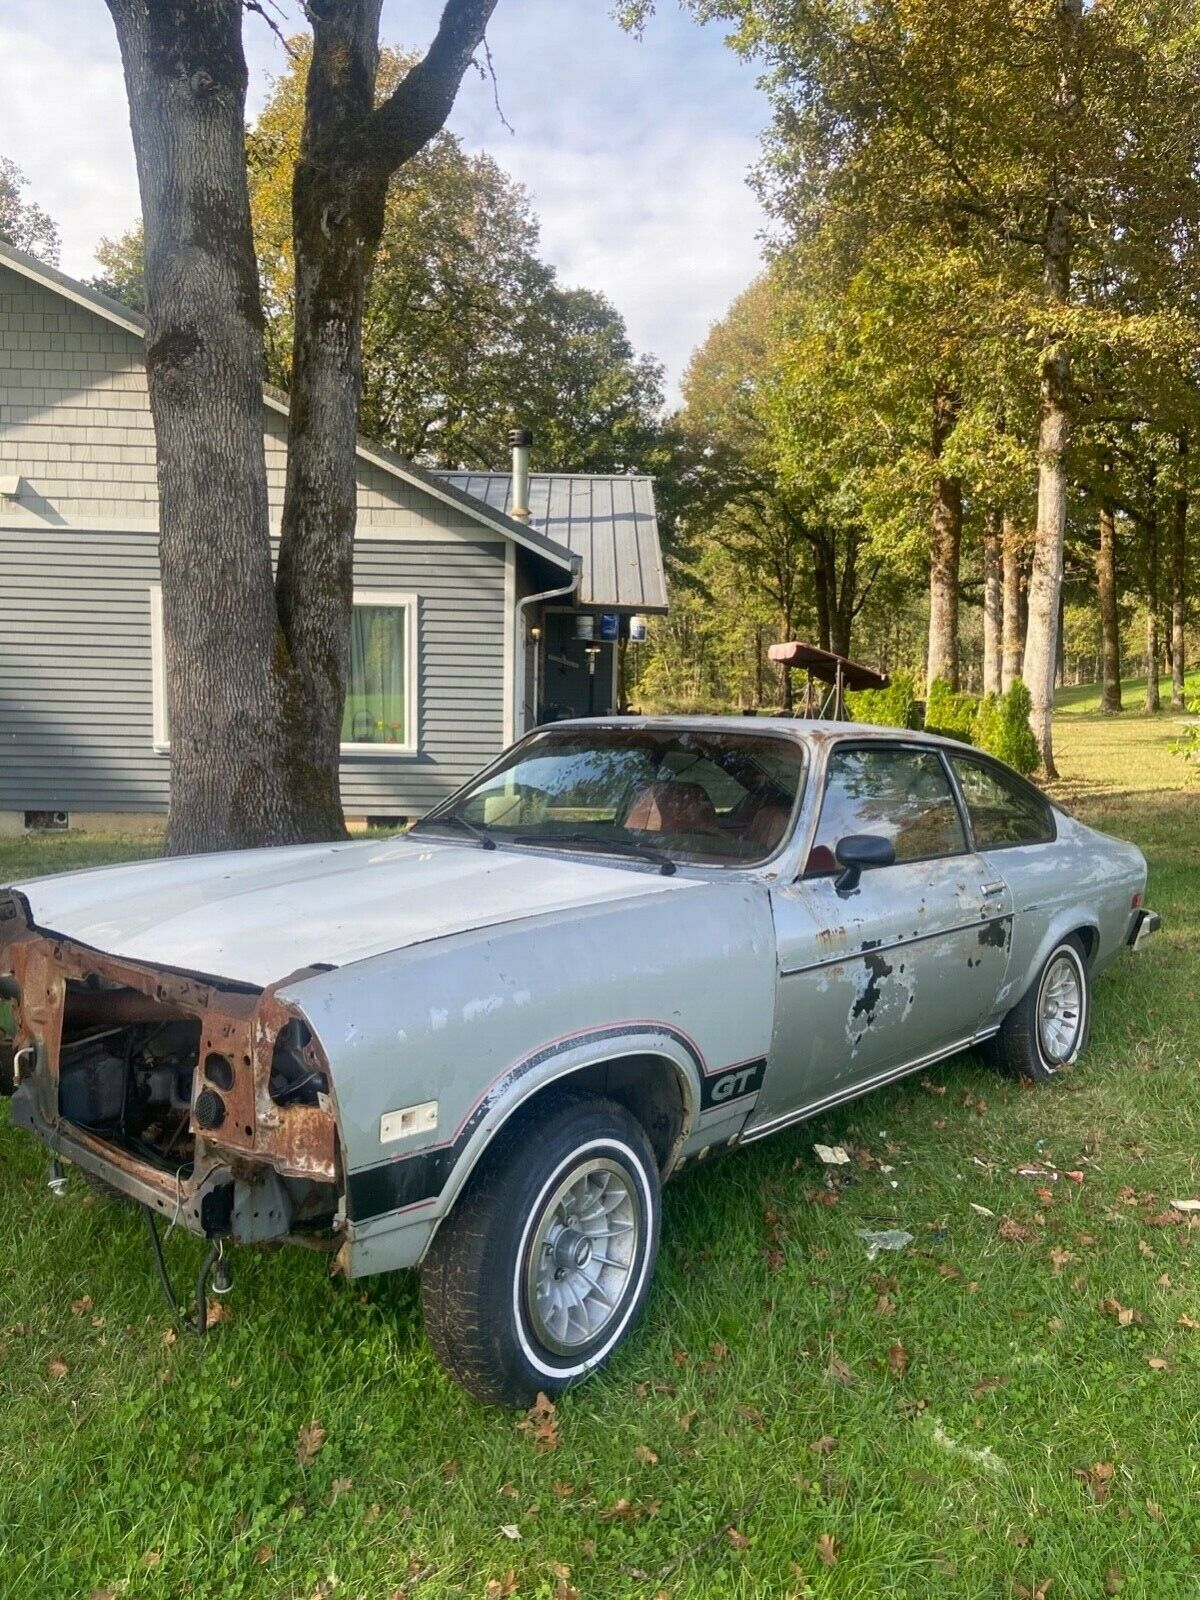 1976 chevy vega gt for sale chevrolet vega 1976 for sale. Black Bedroom Furniture Sets. Home Design Ideas